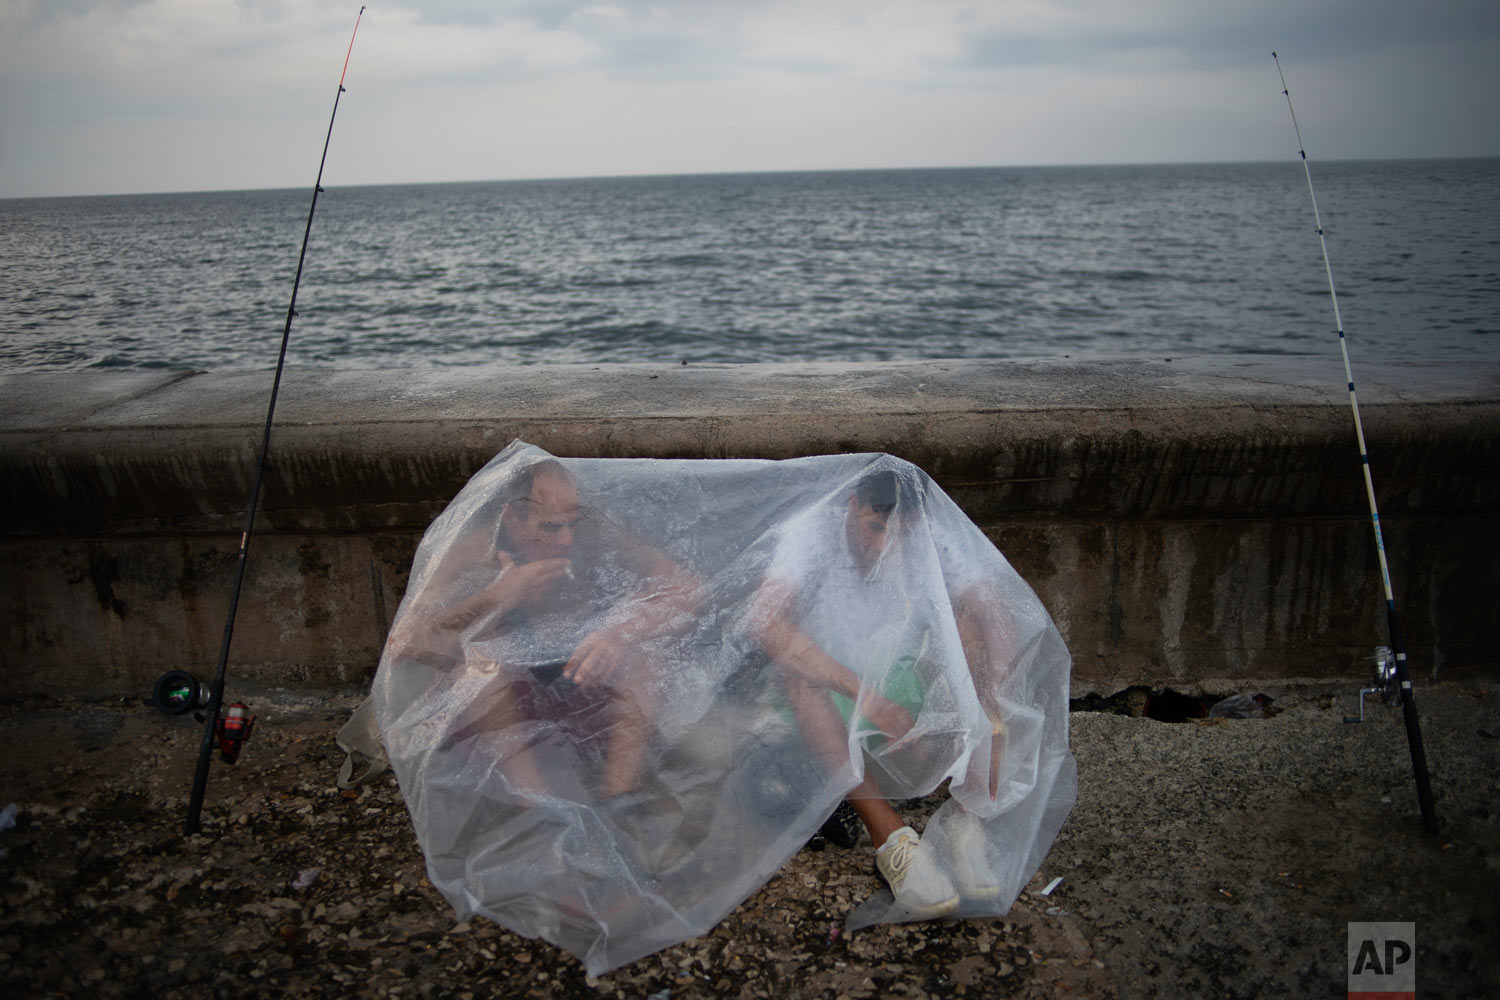 Engelbert Cañete, left, and his friend Ethian Jesus, protect themselves from the rain with a plastic sheet while waiting for the rain to stop so they can continue fishing at the malecón in Havana, Cuba, Monday, May 6, 2019. (AP Photo/Ramon Espinosa)